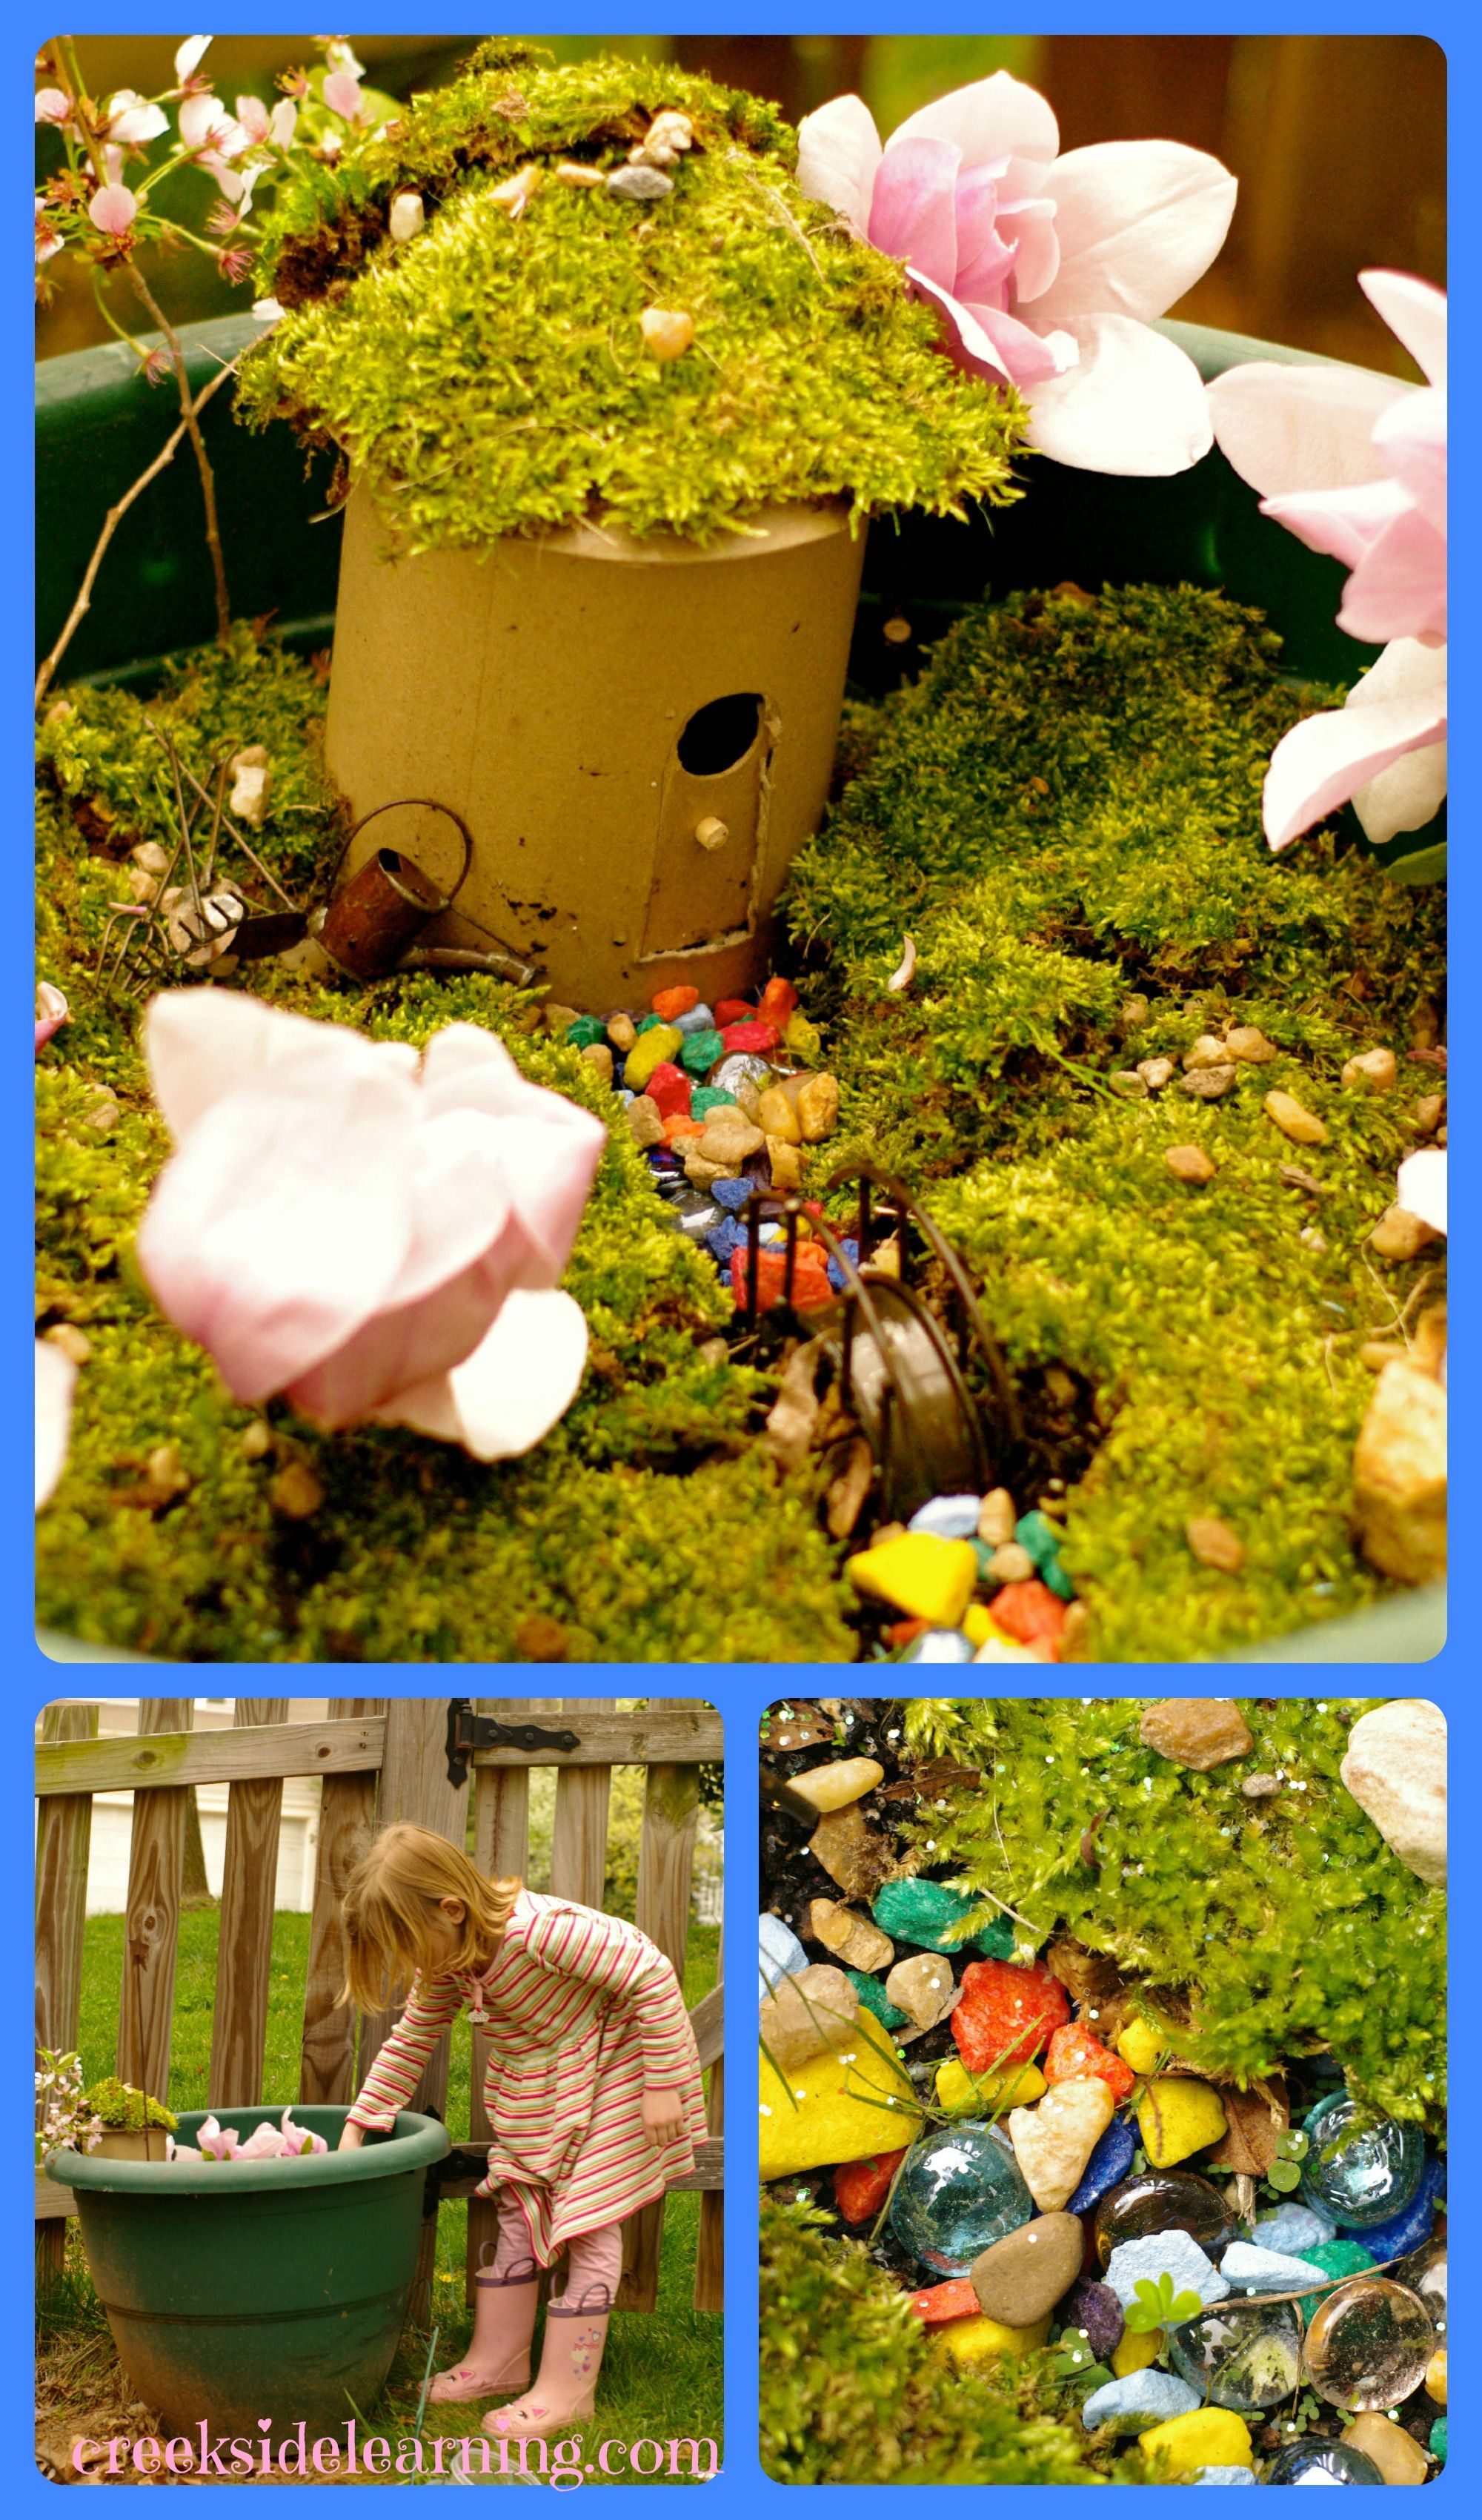 Graceful Kids Fairy Gardens Make An Easy Fairy House Fairy Garden From Creeksidelearning A Fairy House Garden Kids Fairy Fairy Kids To Make garden Fairy Garden For Kids